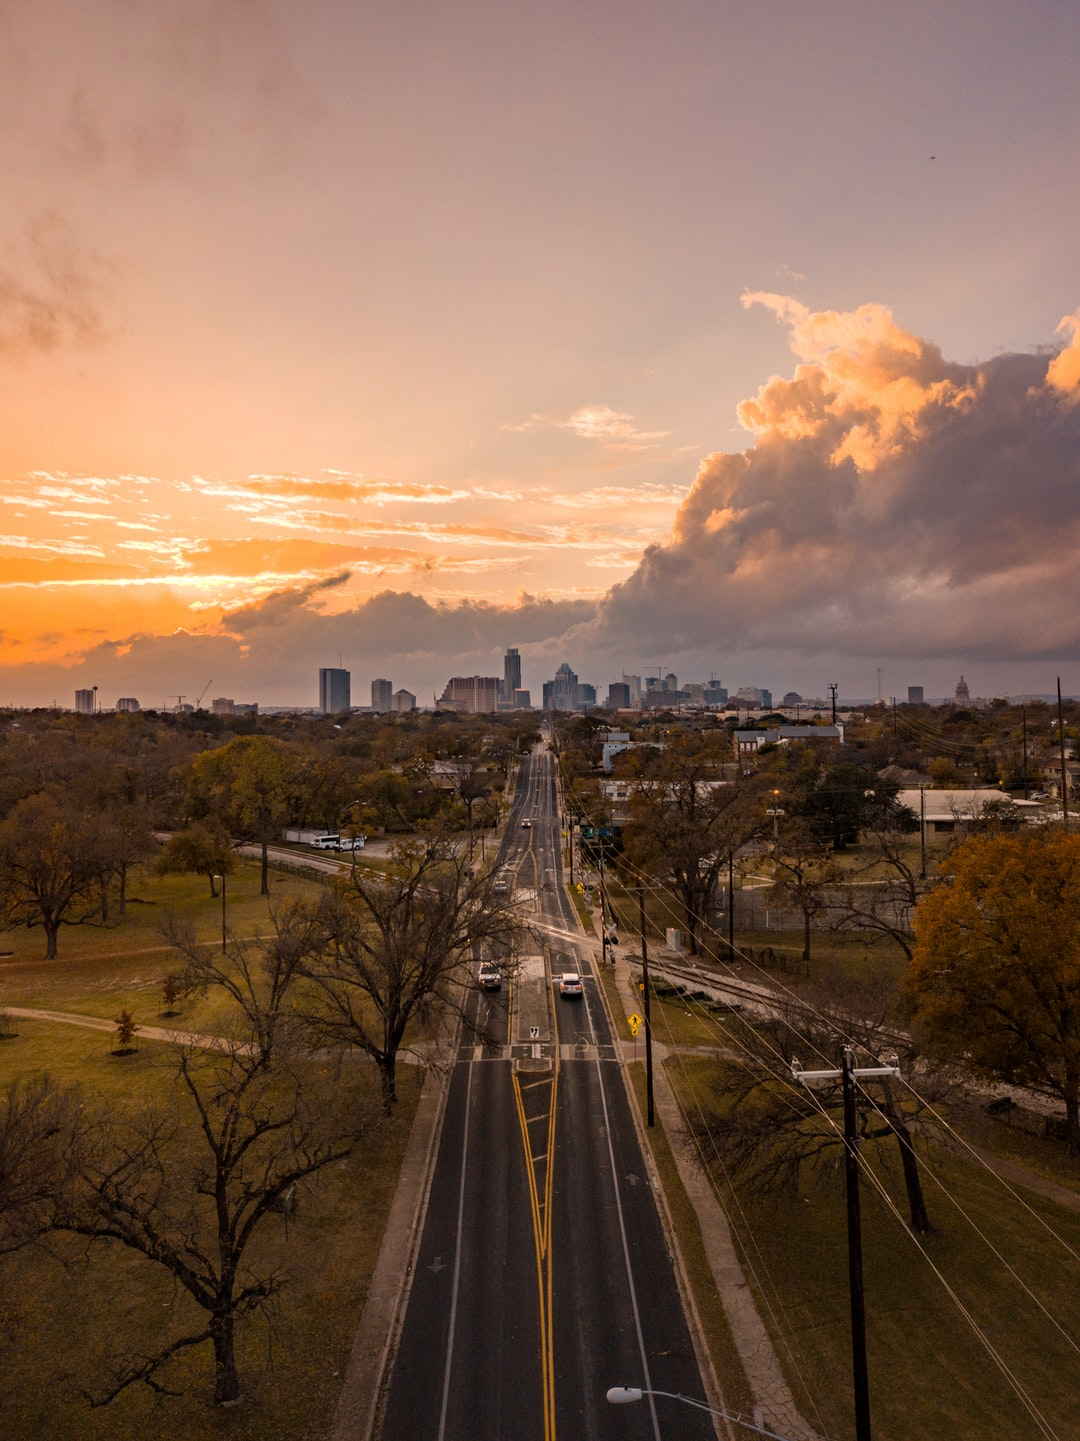 Took a sunset photo from east austin's skyline